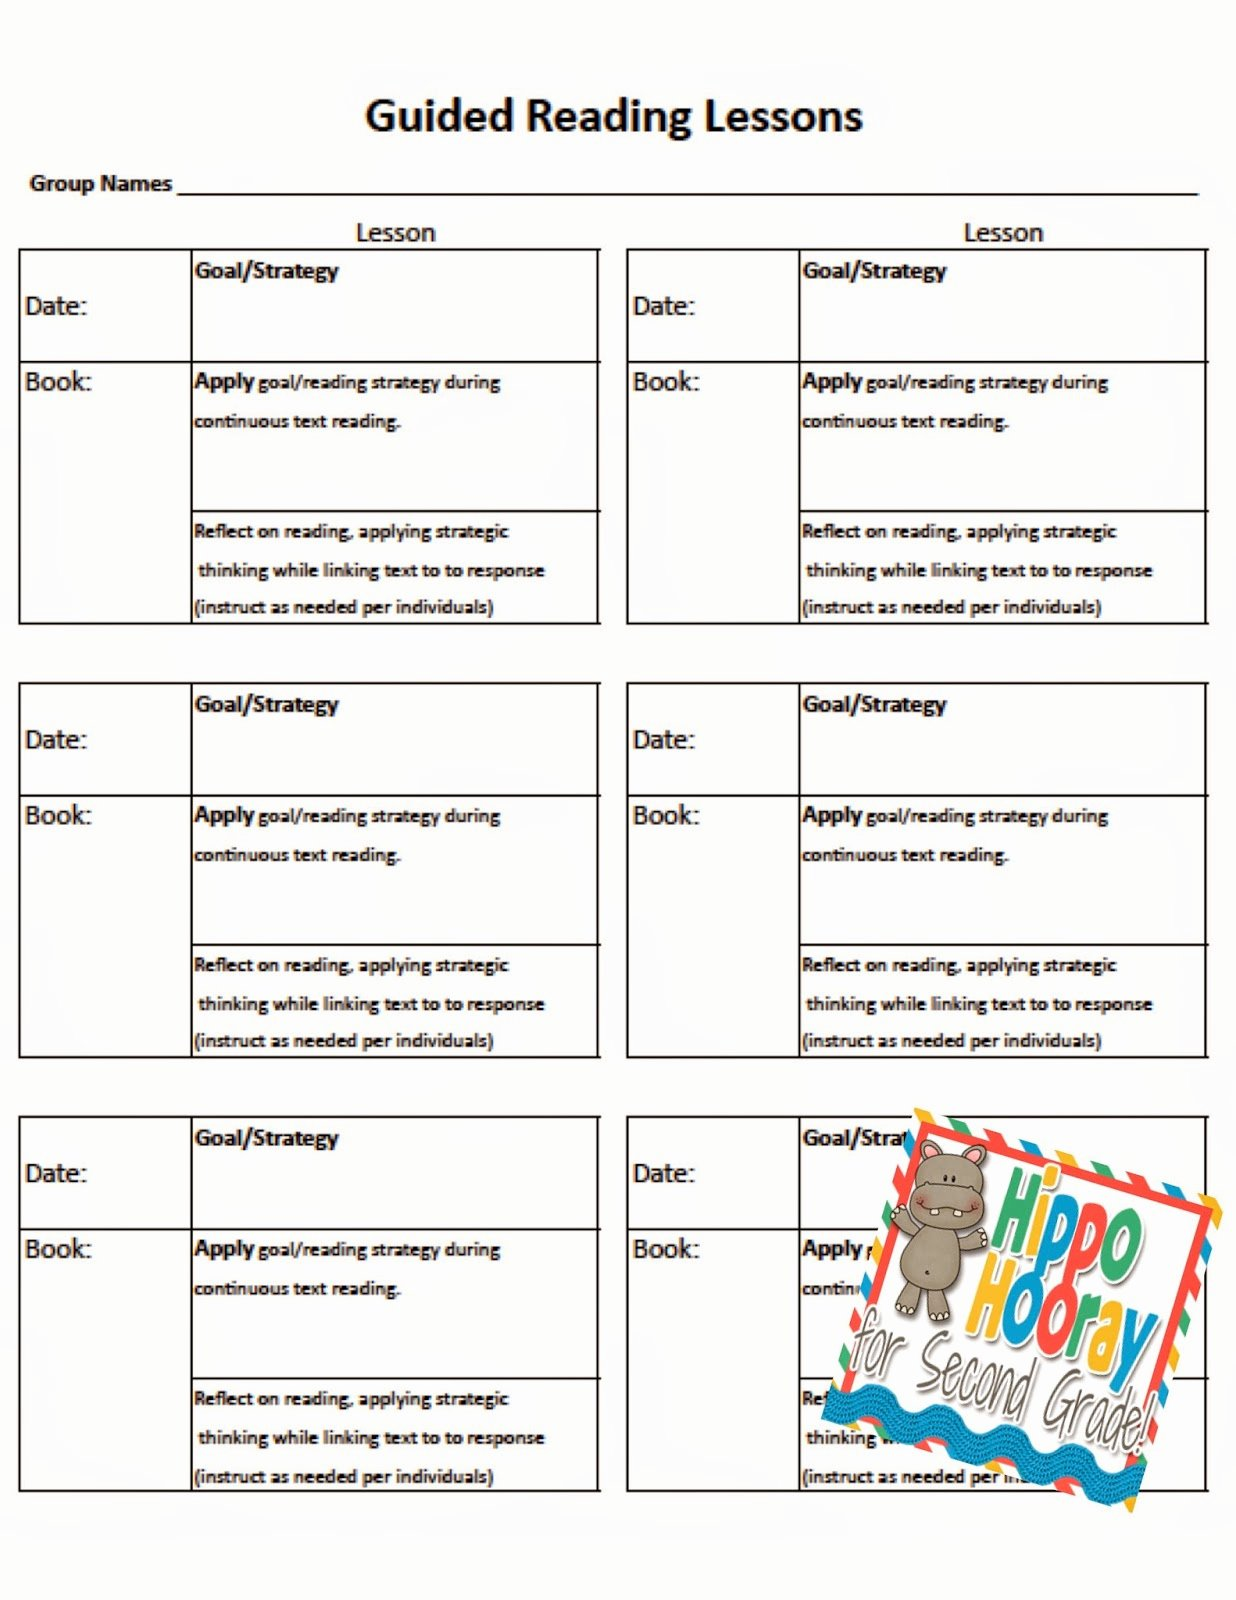 Readers Workshop Lesson Plan Template Inspirational Guided Reading Lesson Planning and Note Taking Hippo